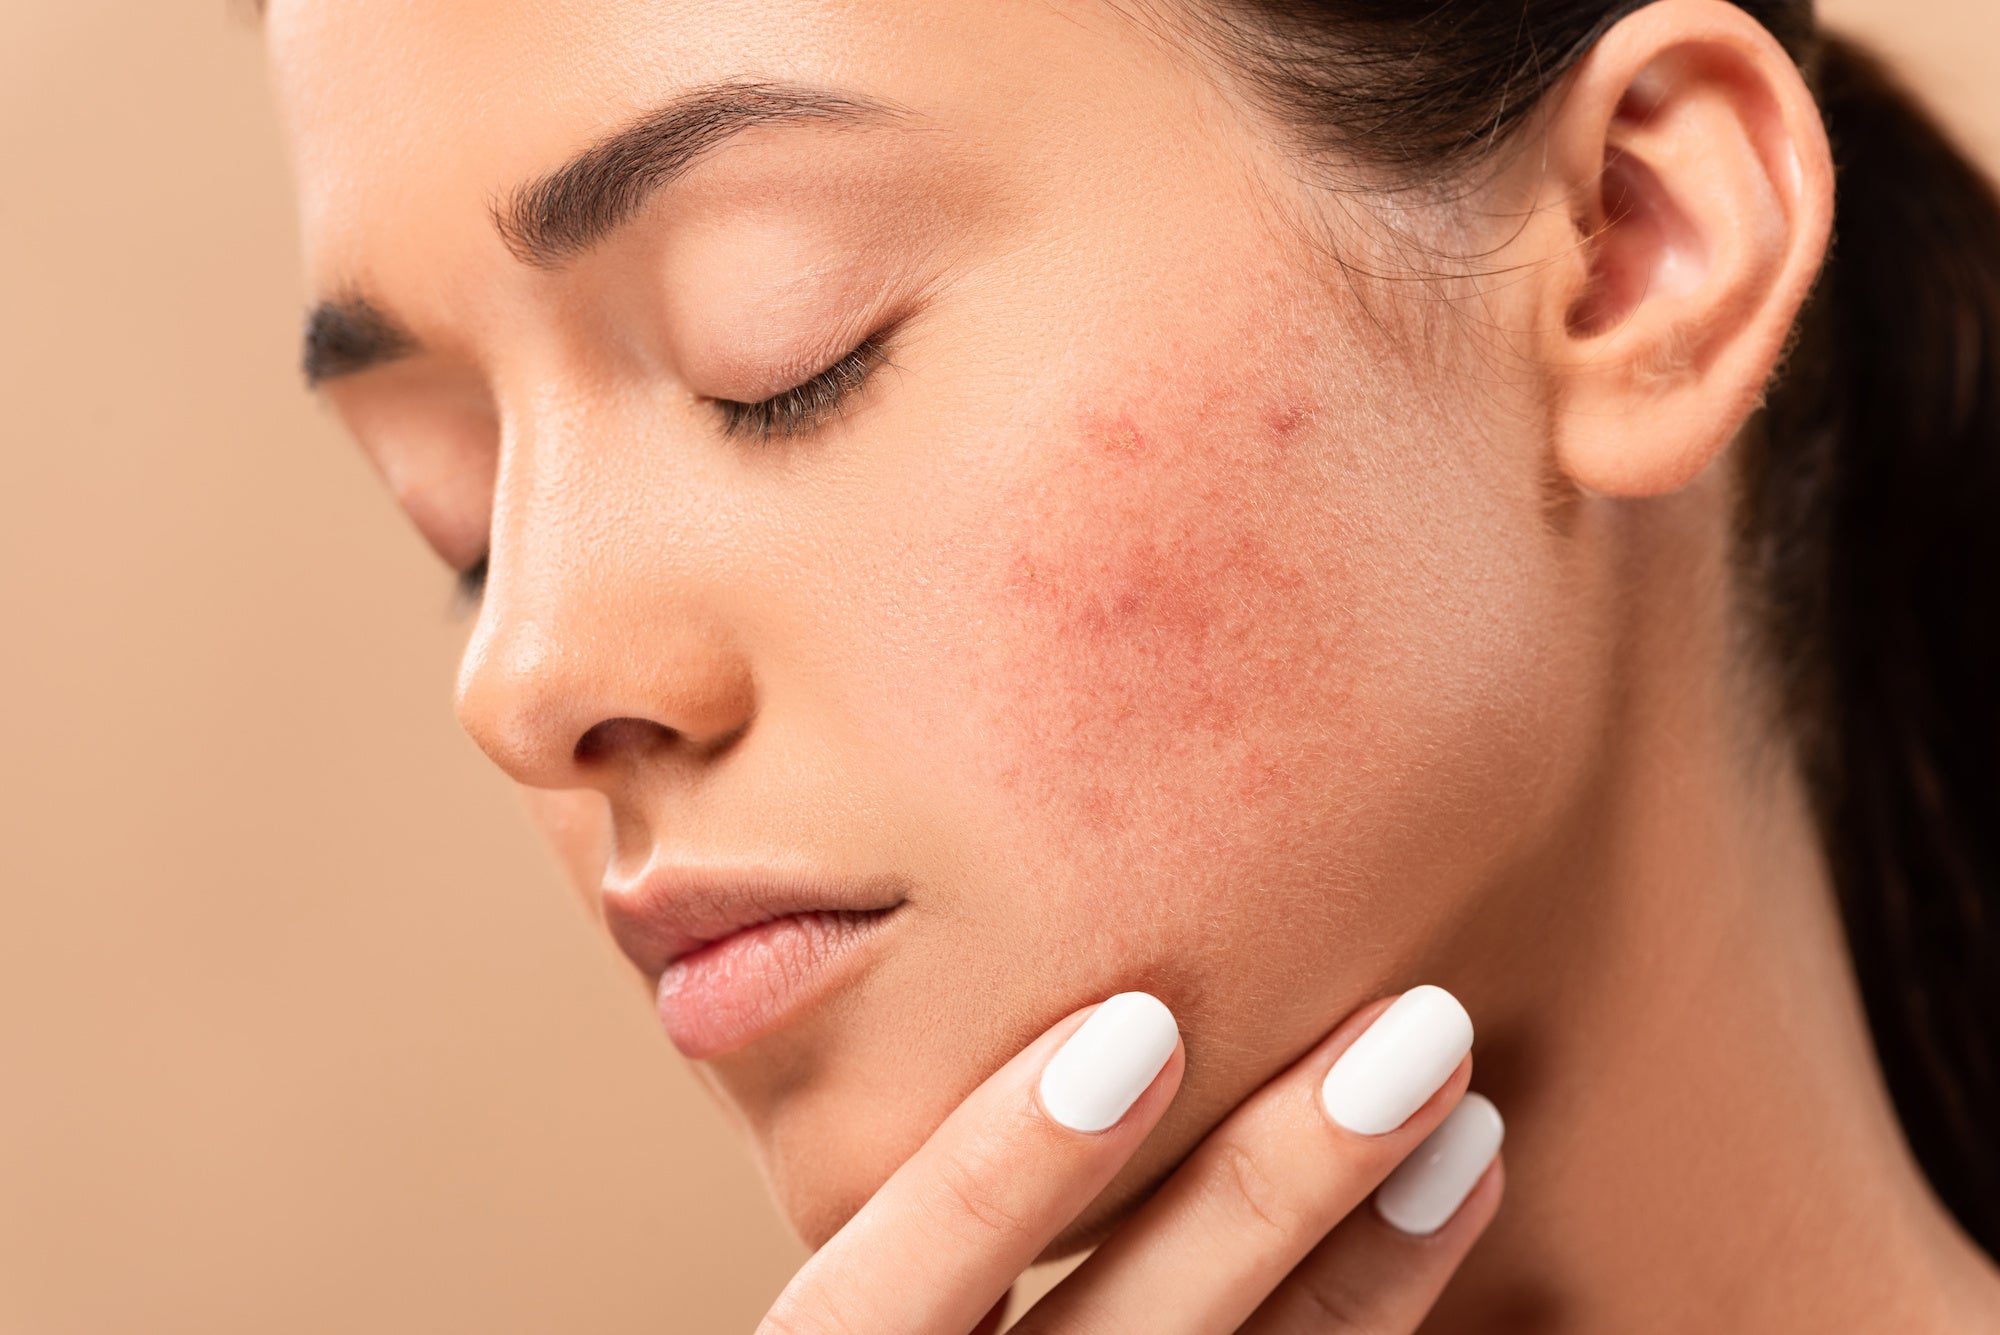 Is there a way to stop acne scarring?